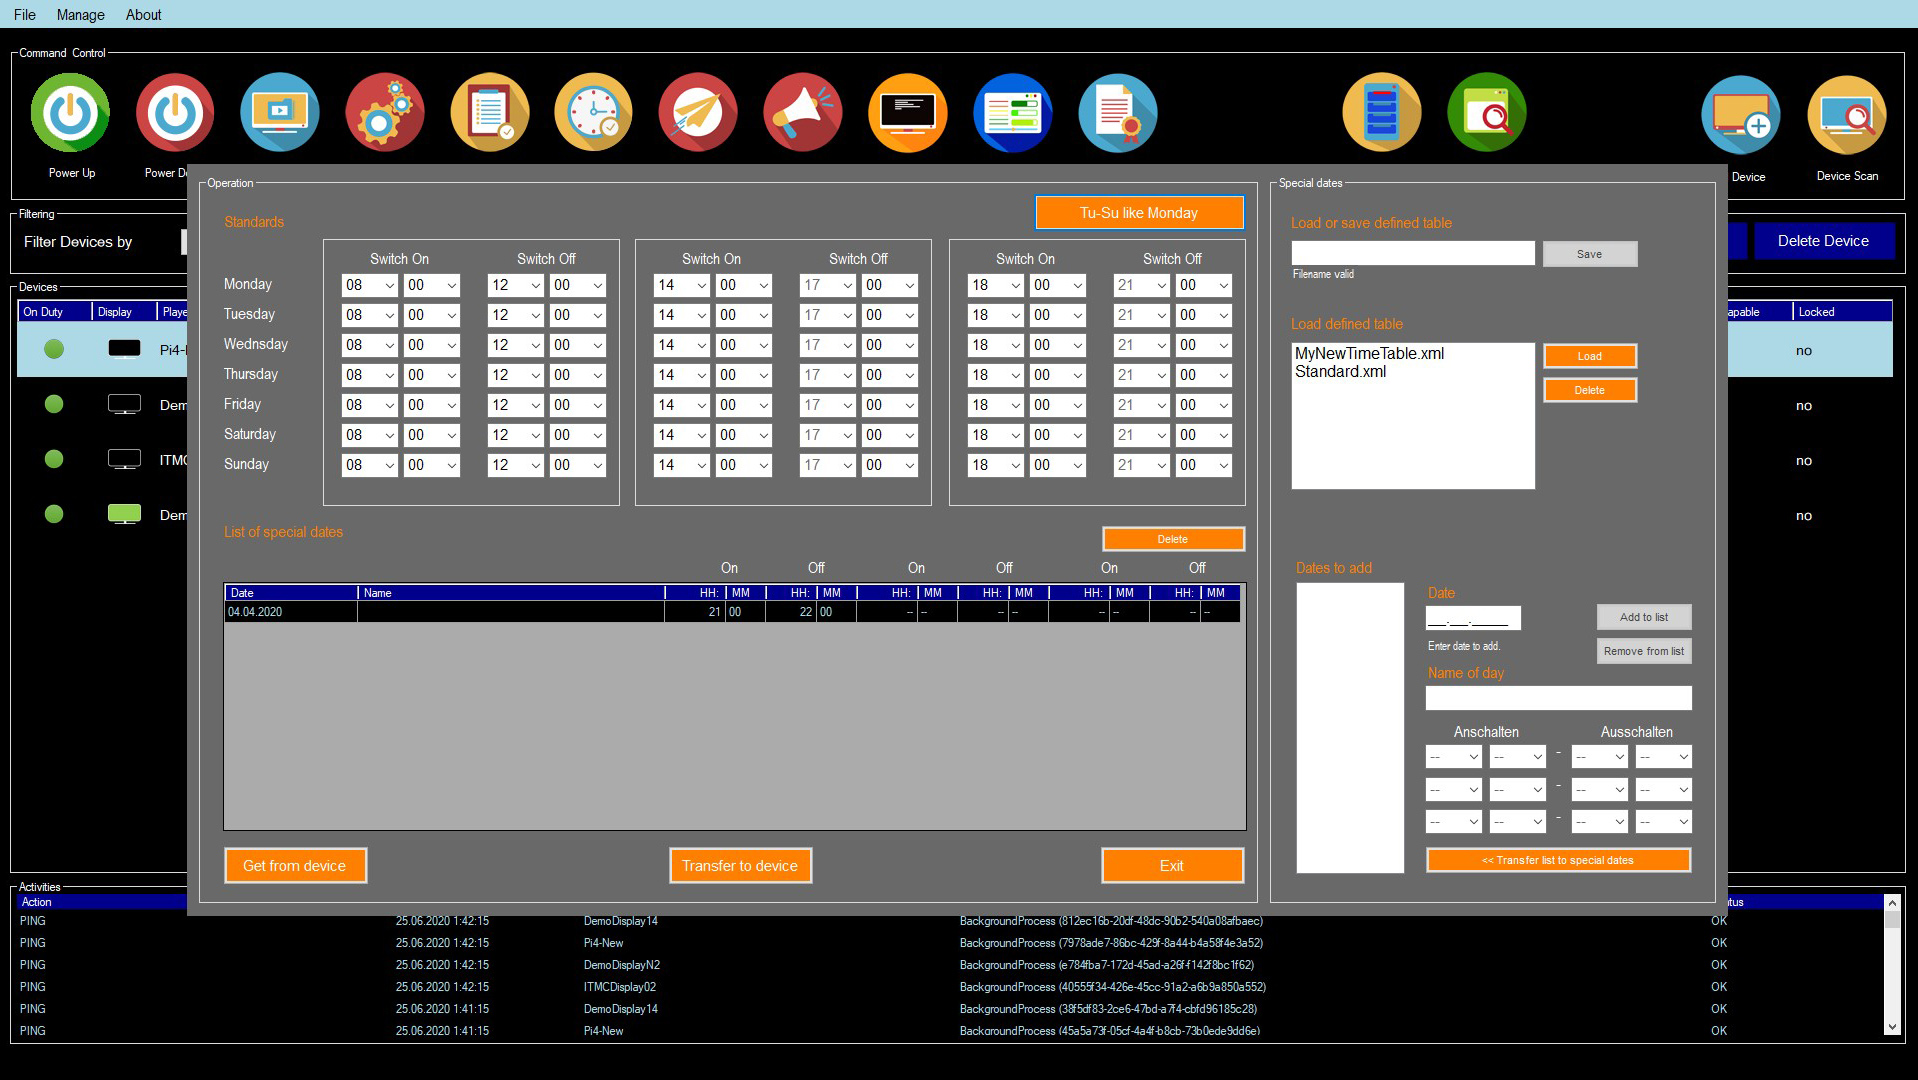 WPITCOM Display Manager 2 Timetable Update